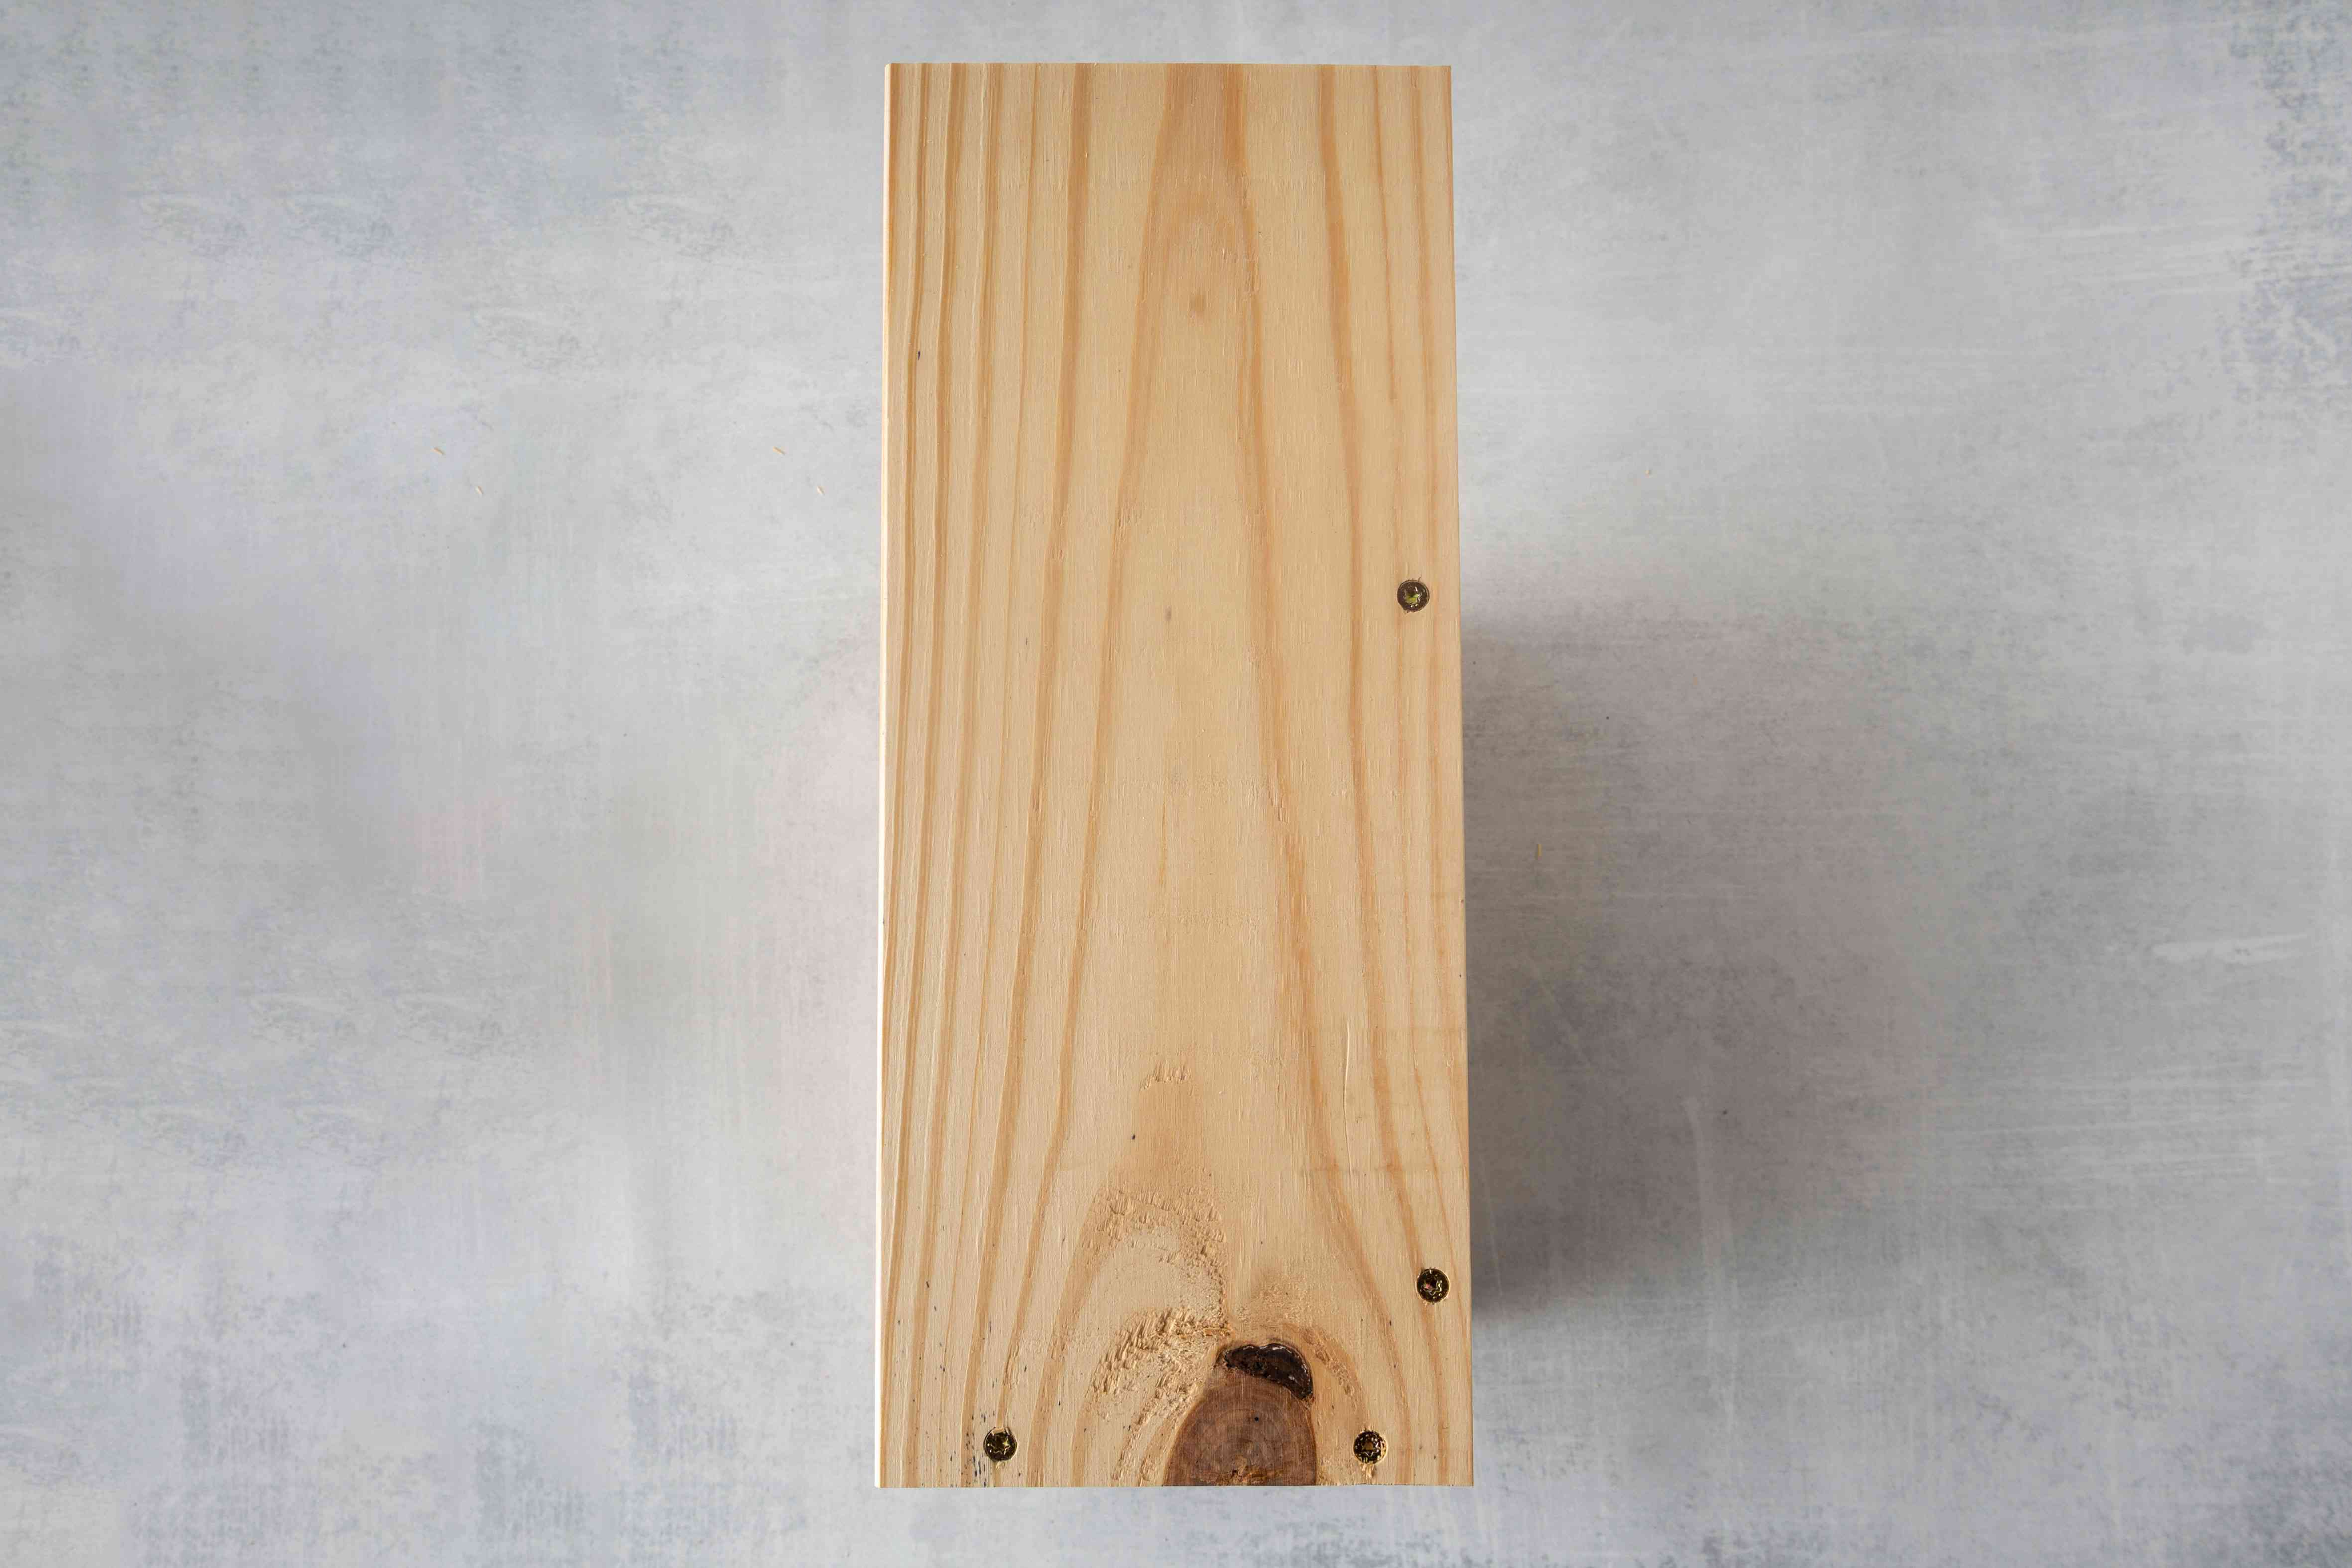 A pine board with screws.